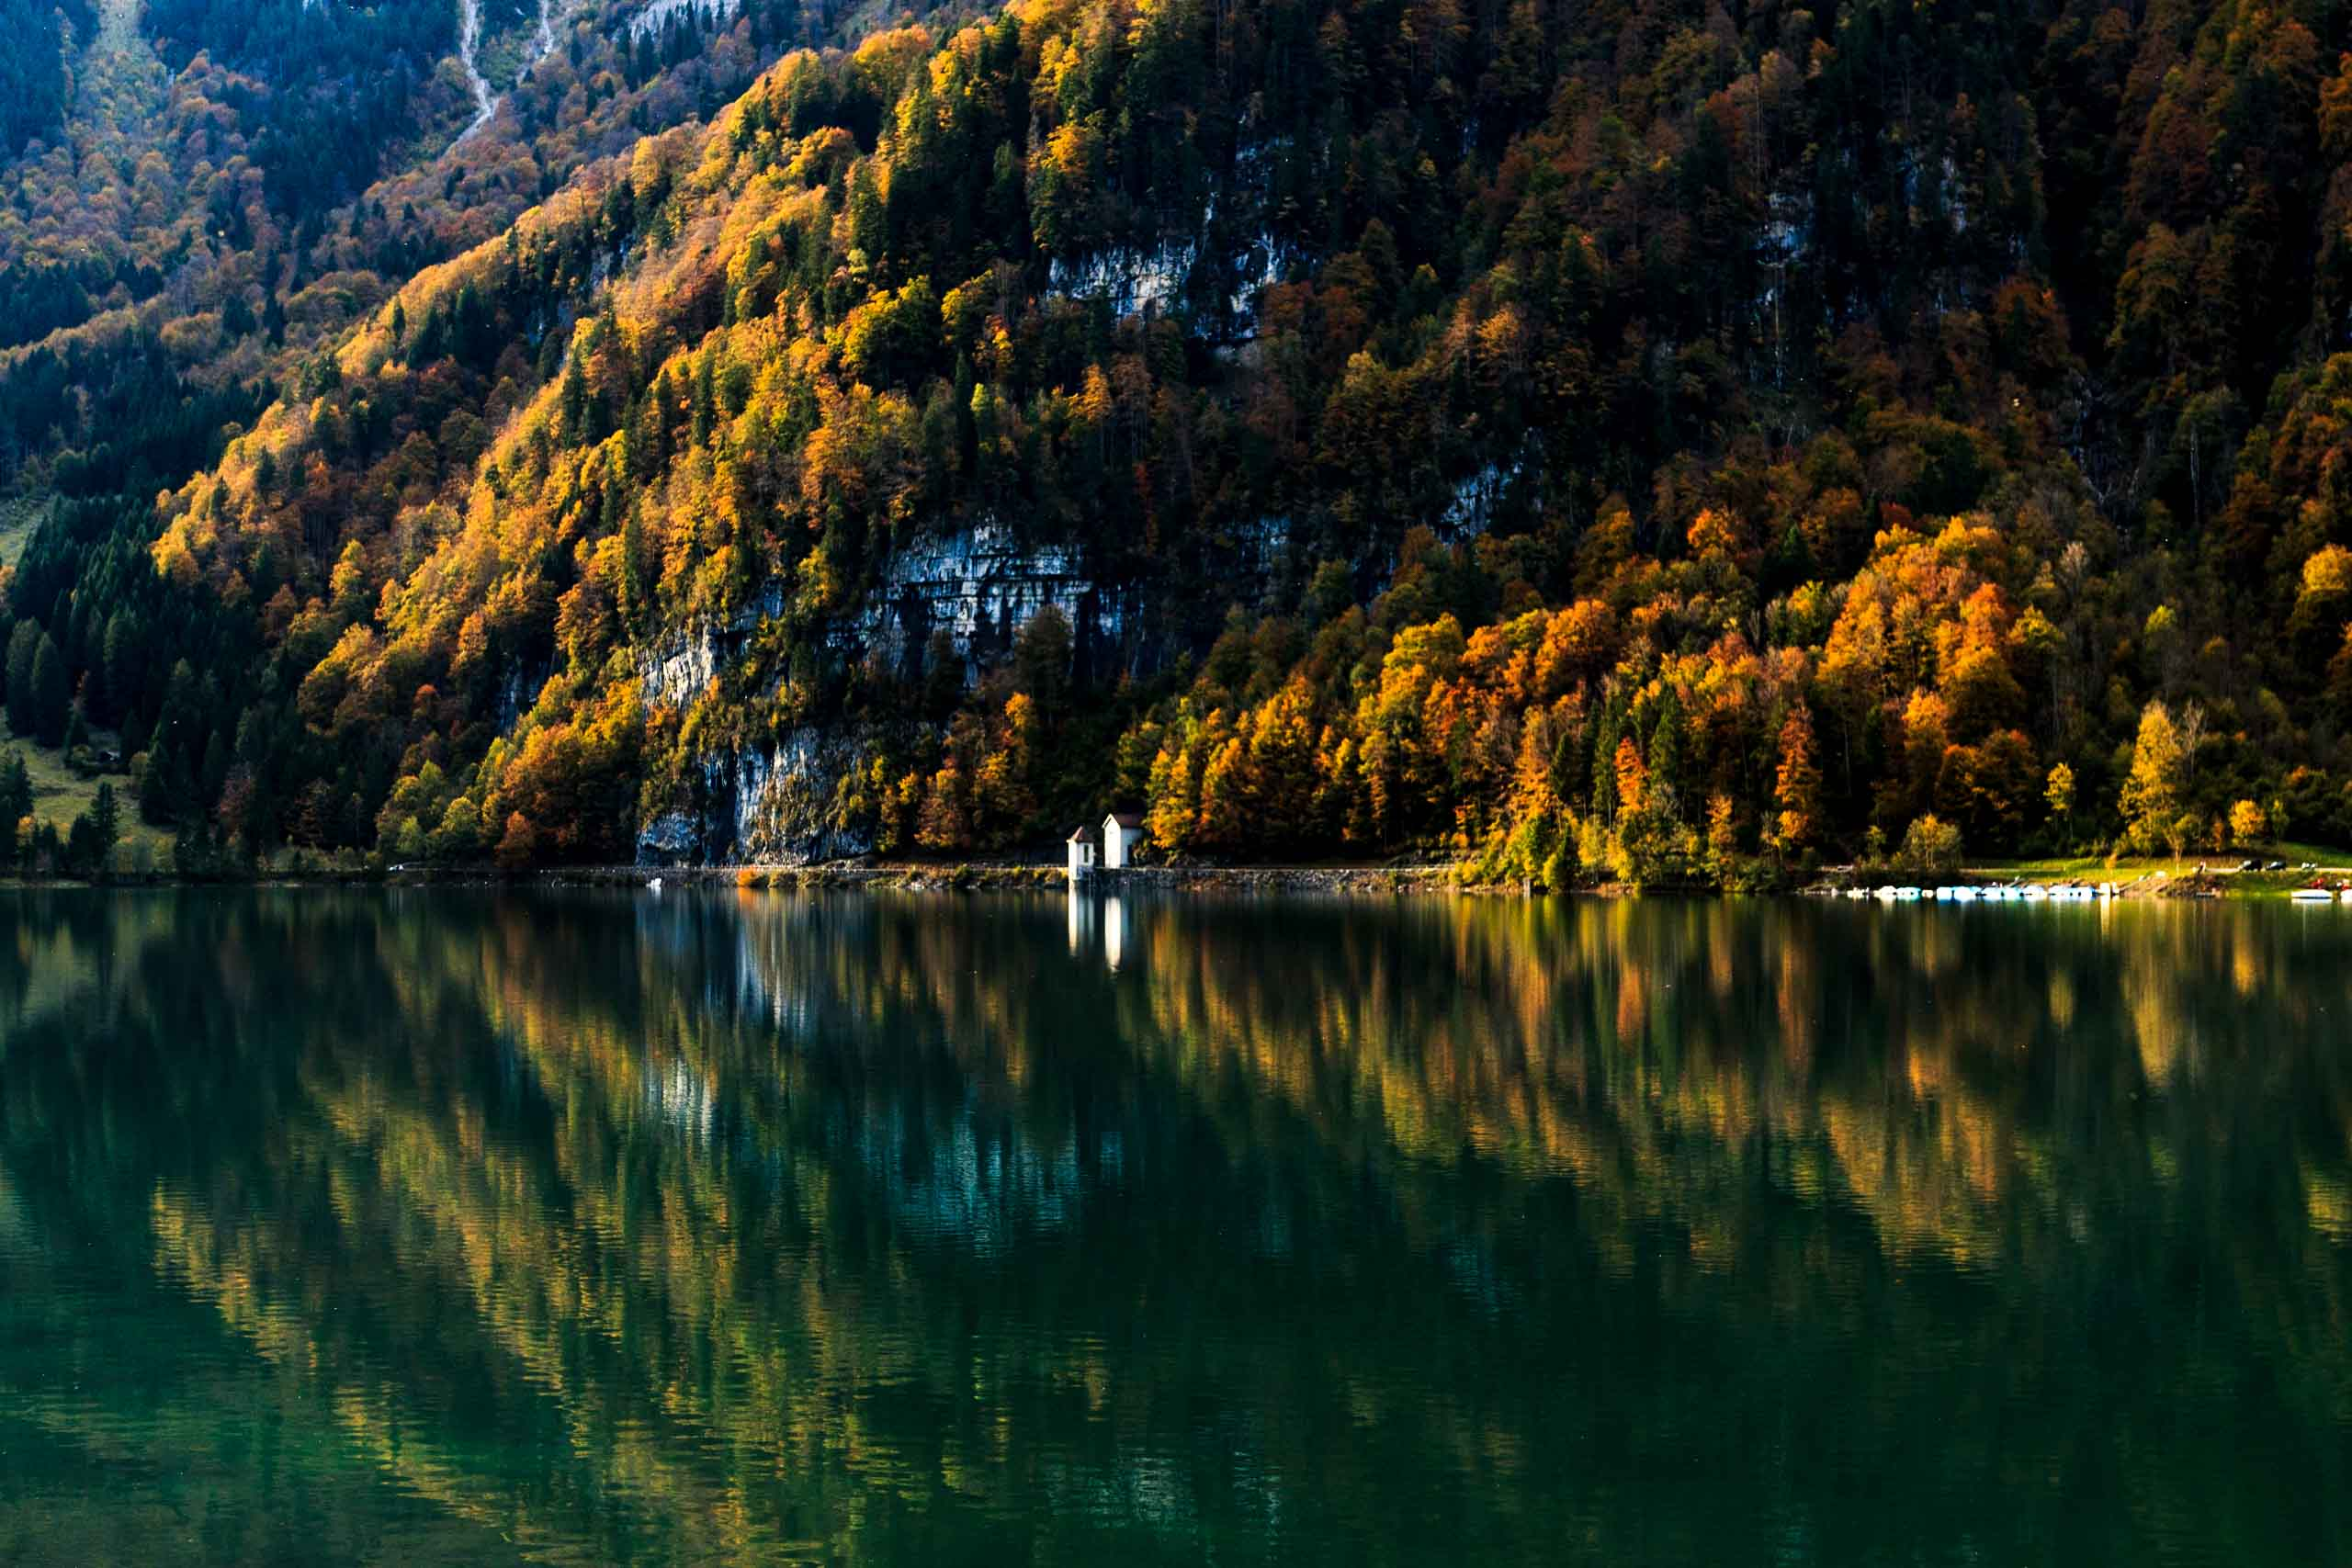 Building with autumn forest in the background. Reflection in lake.